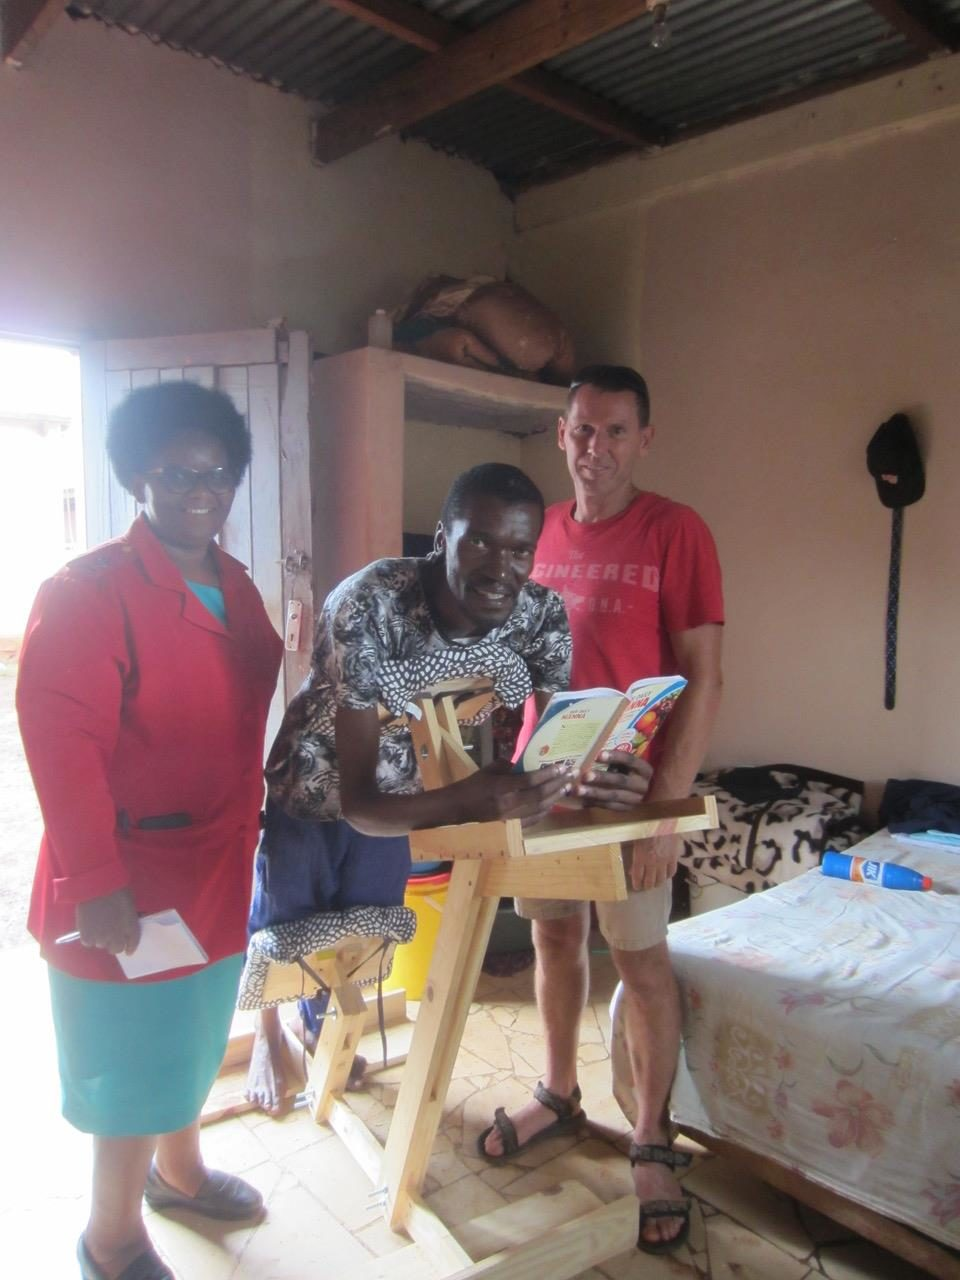 Khulani with the operation hope team and his new chair